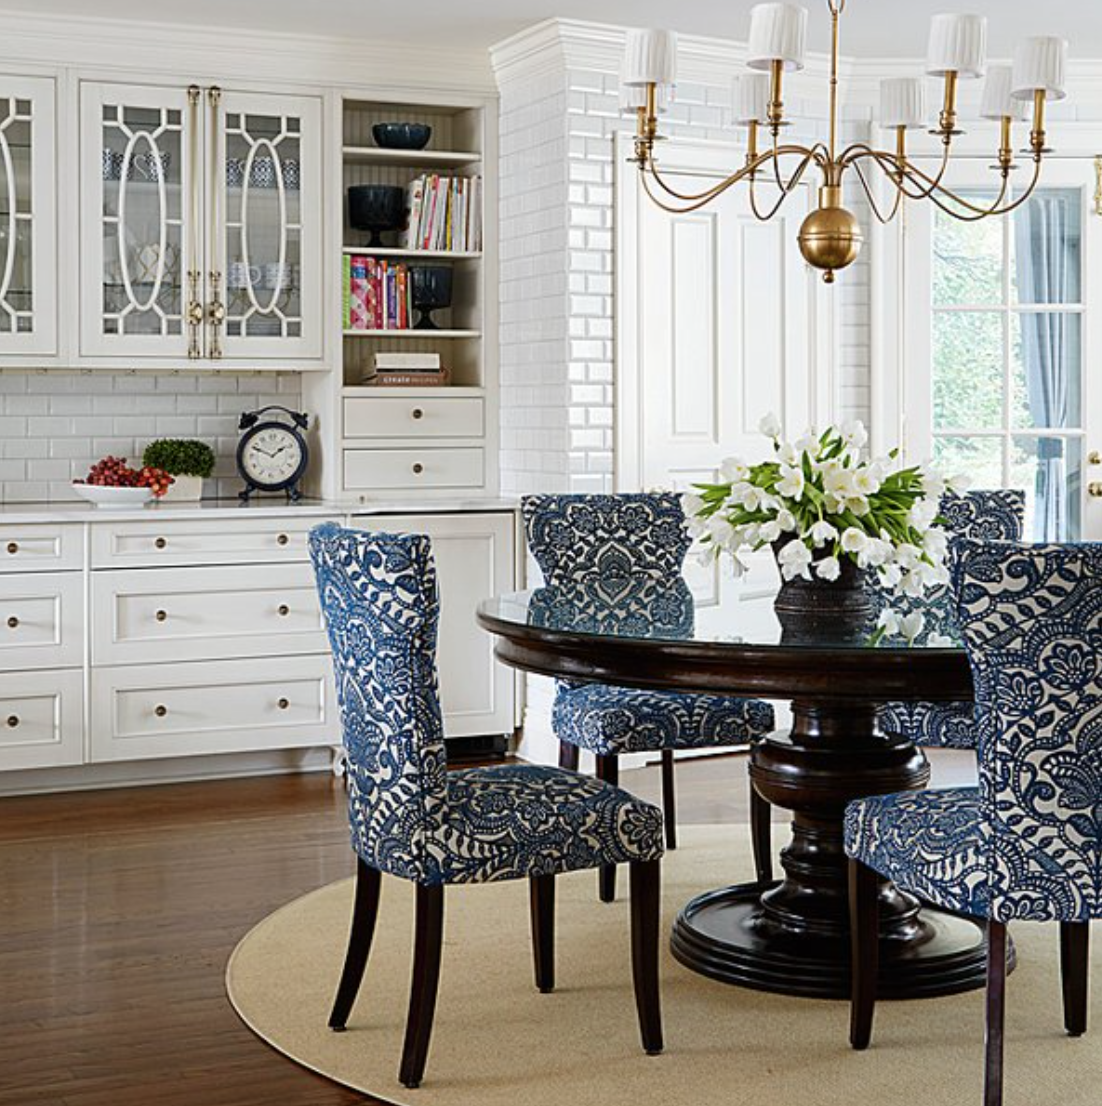 Via Traditional Homebeautiful Fabric On Dining Chairs Make The Cool Cost To Reupholster Dining Room Chairs Design Inspiration